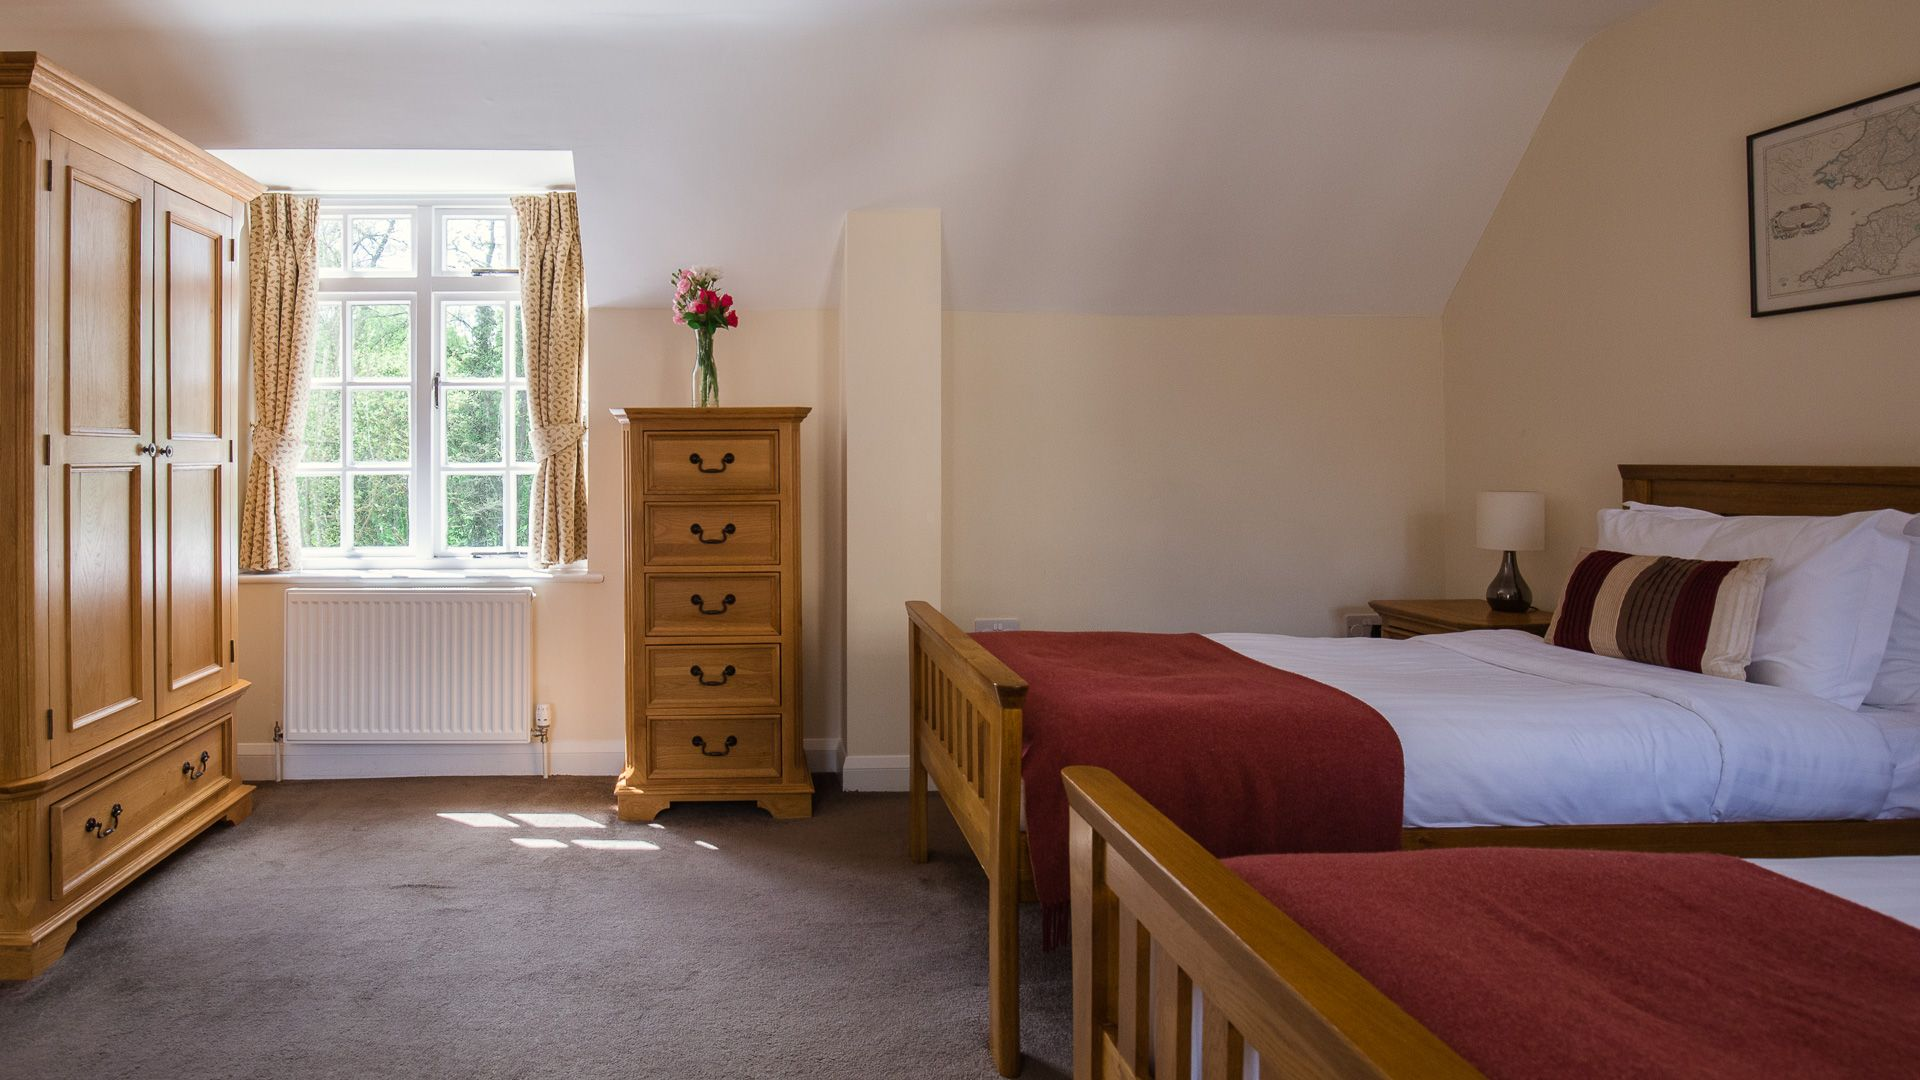 Bedroom Two, Lord High Admiral at Sudeley Castle, Bolthole Retreats